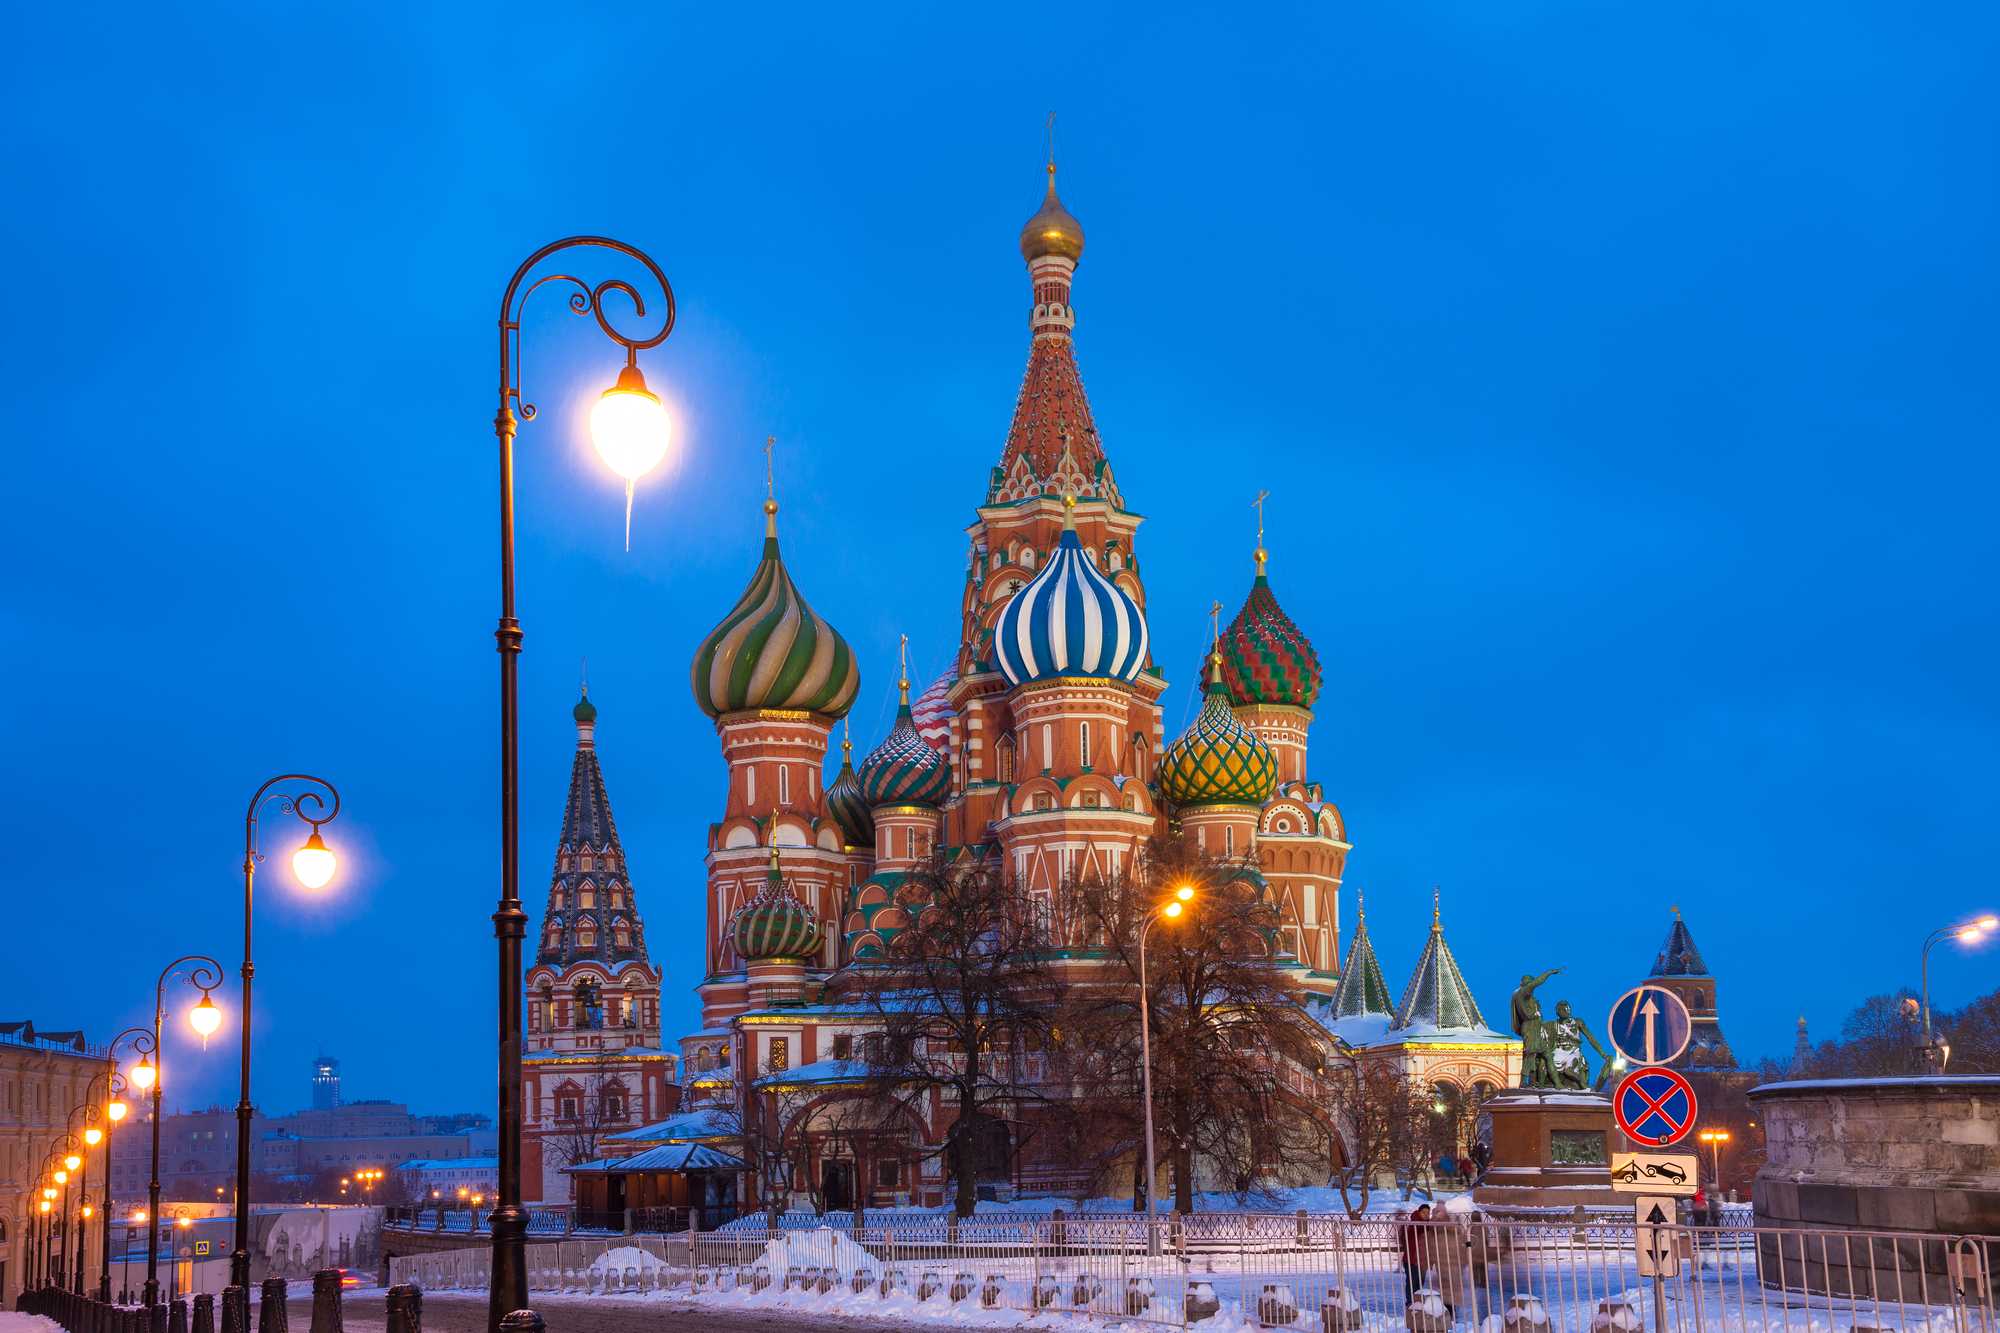 St. Basils Cathedral at night, Russia